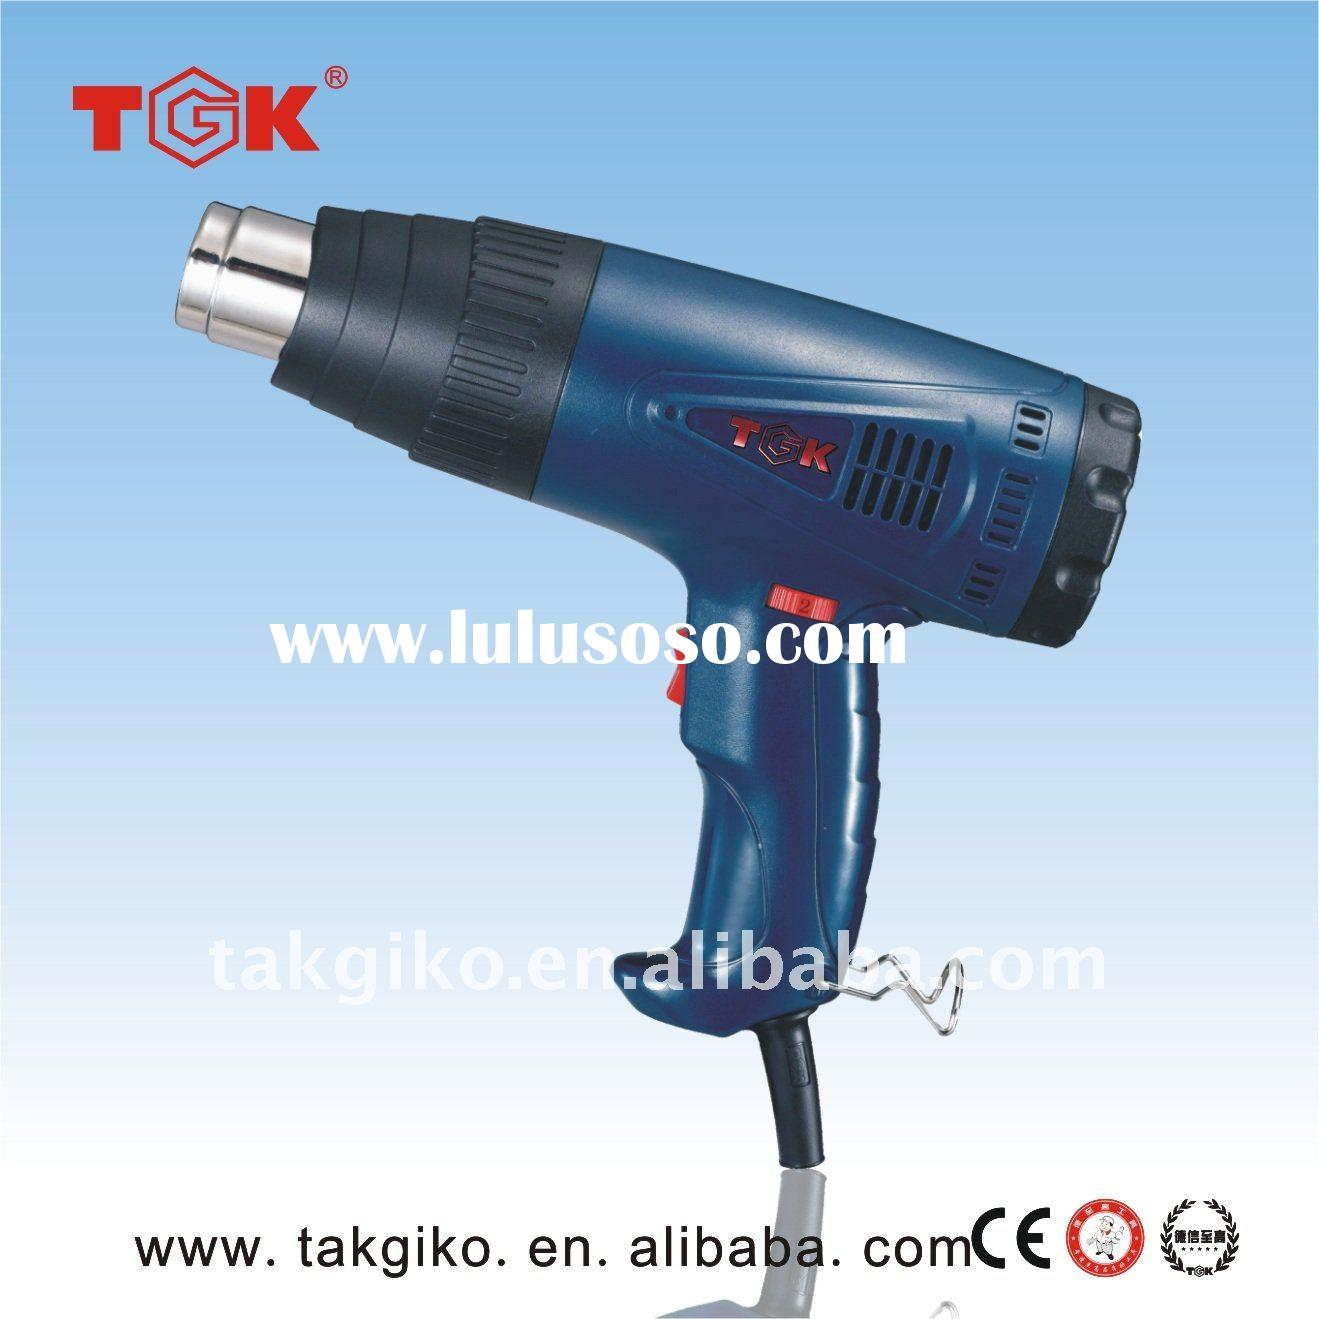 Brand new TGK-8720 hot air blower gun 2000W